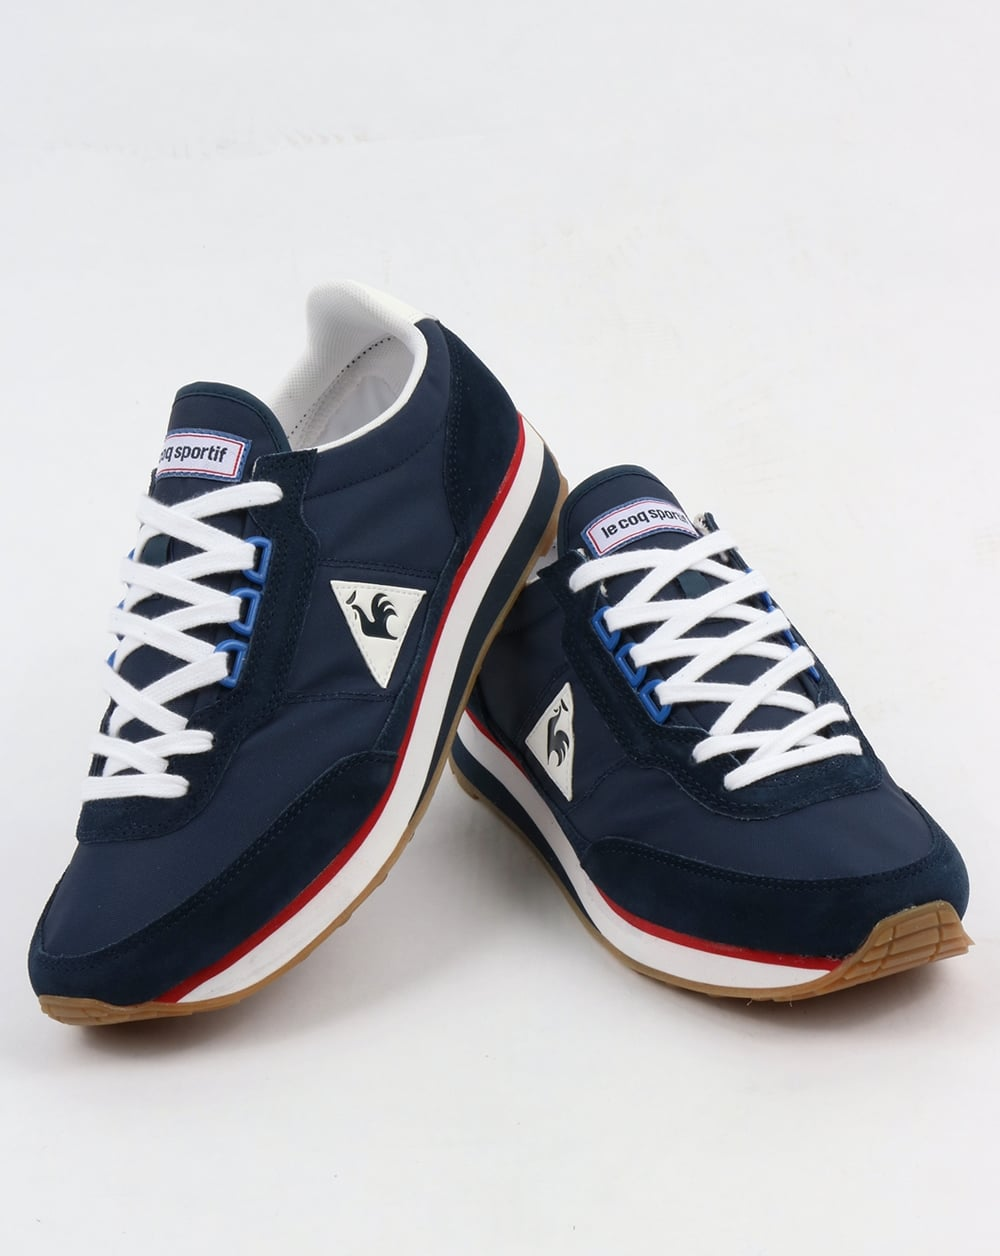 le coq sportif azstyle trainers navy red running. Black Bedroom Furniture Sets. Home Design Ideas